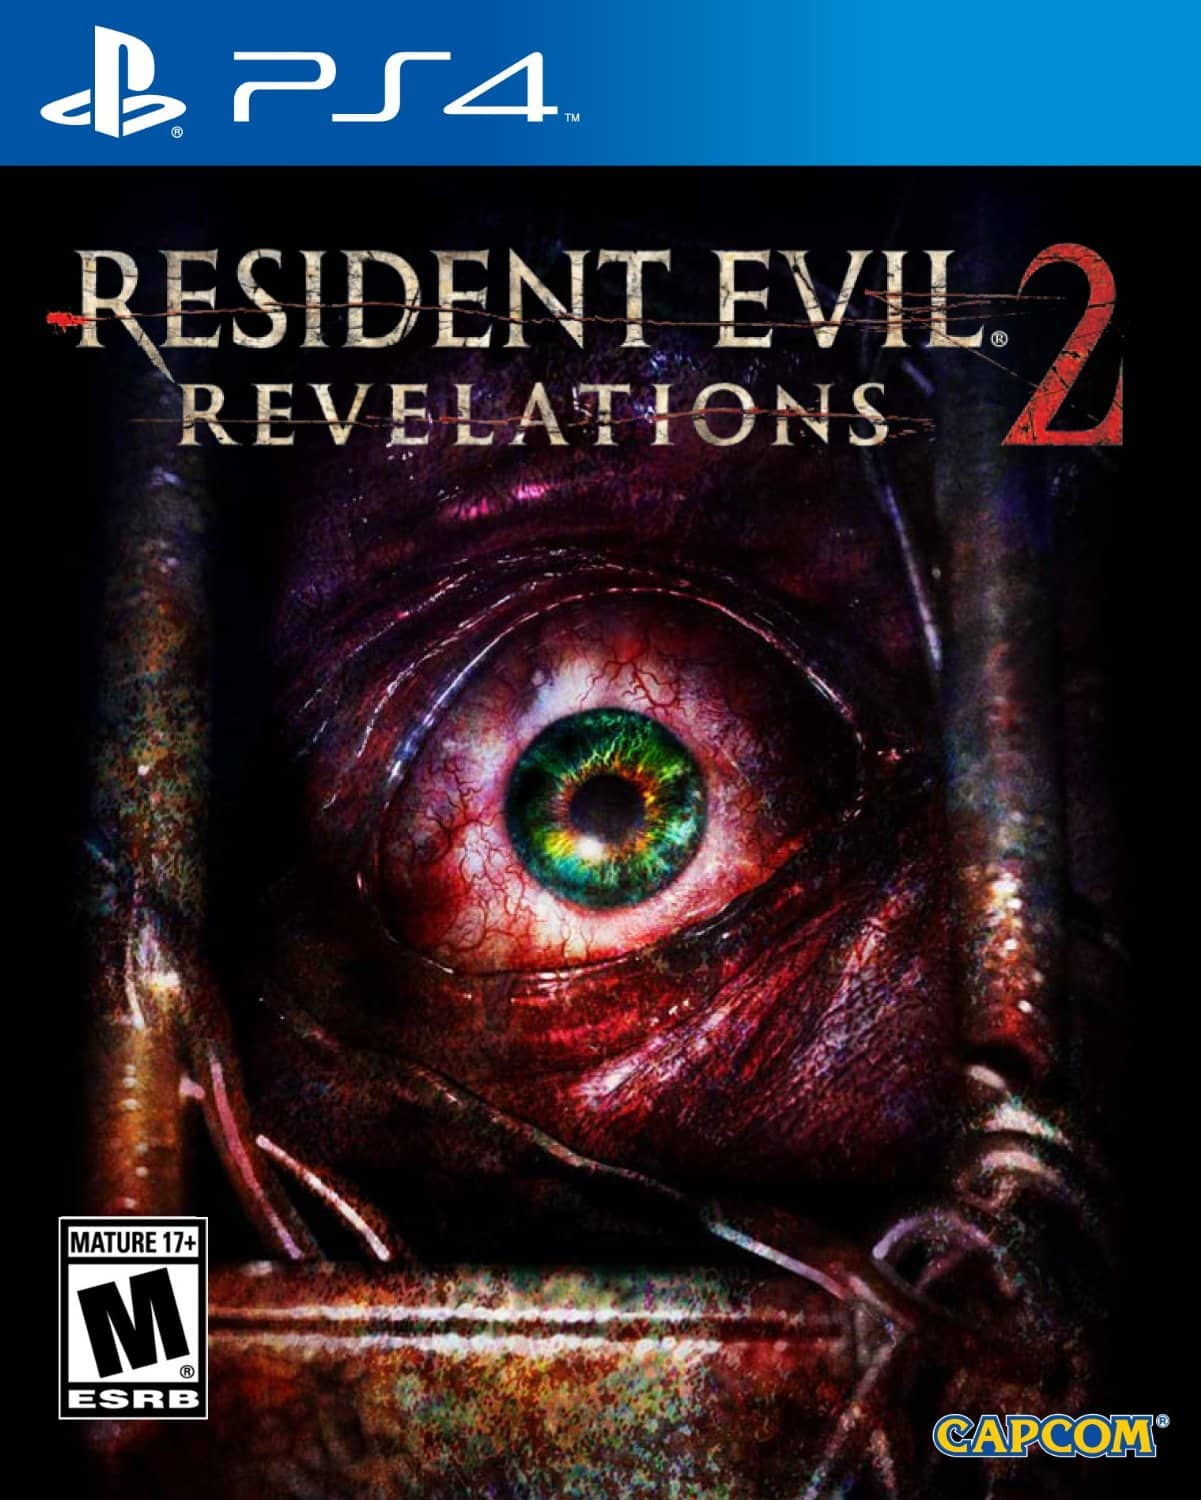 GameFly Pre-Owned Games (PS4 & Xbox One): RE: Revelations 2  $15 & More + Free Shipping